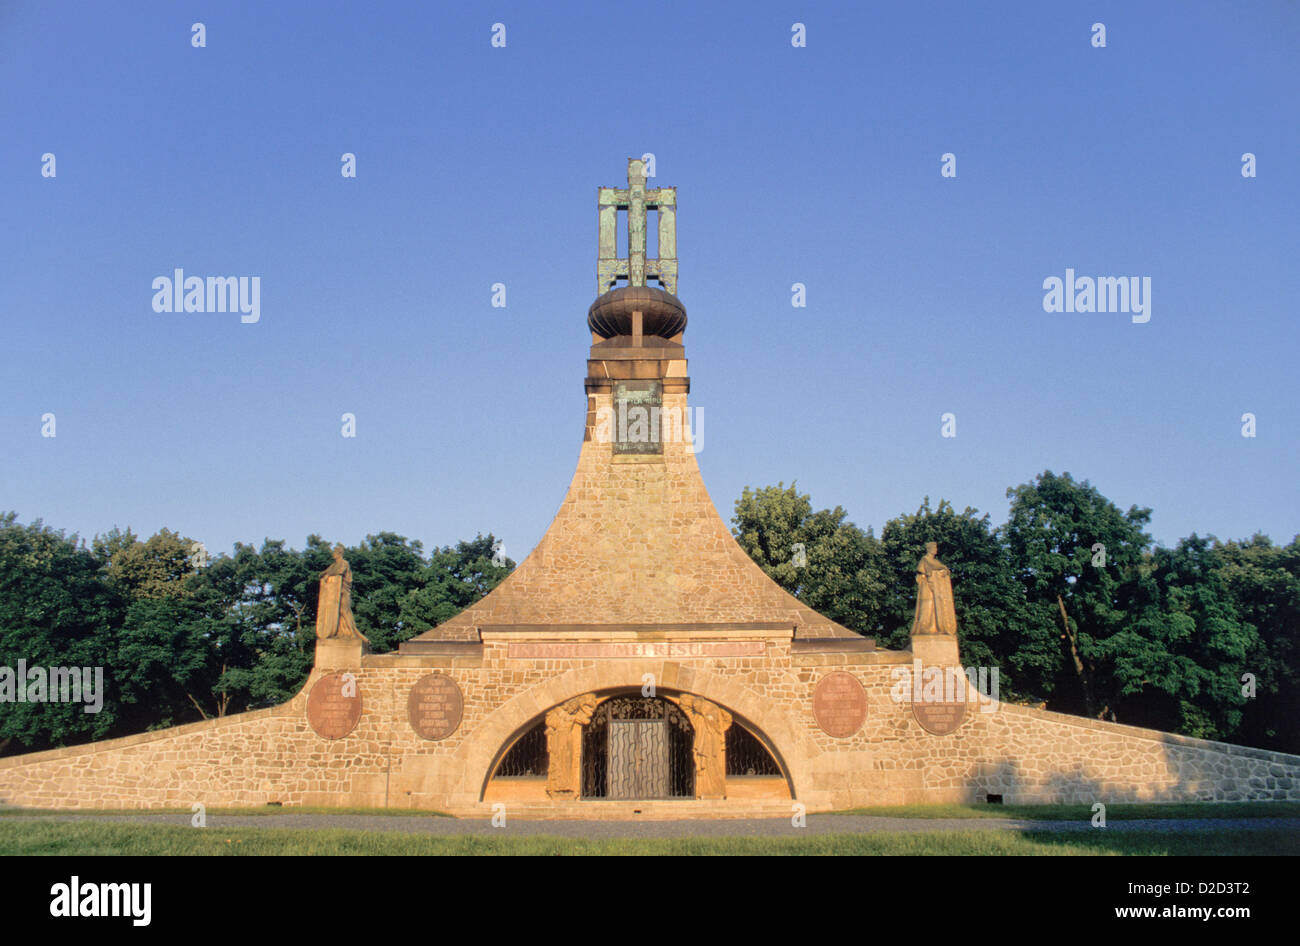 Czech Republic, Slavkov U Brna (Austerlitz). Mohyla Miru (Mound Of Peace) - Stock Image